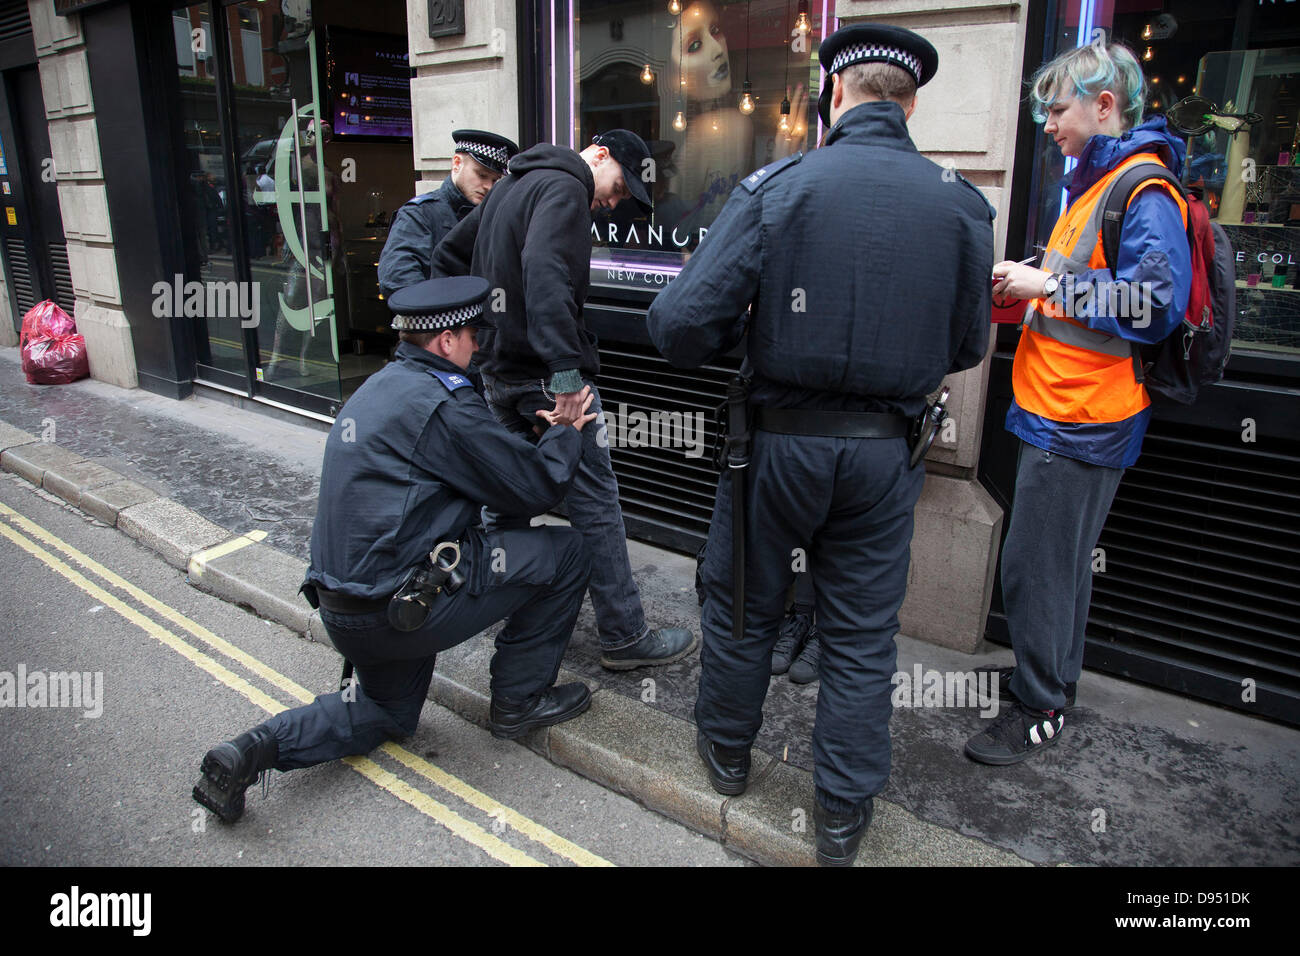 Protesters demonstrate against the upcoming G8 summit in central London, UK. Protesters being stopped and searched - Stock Image